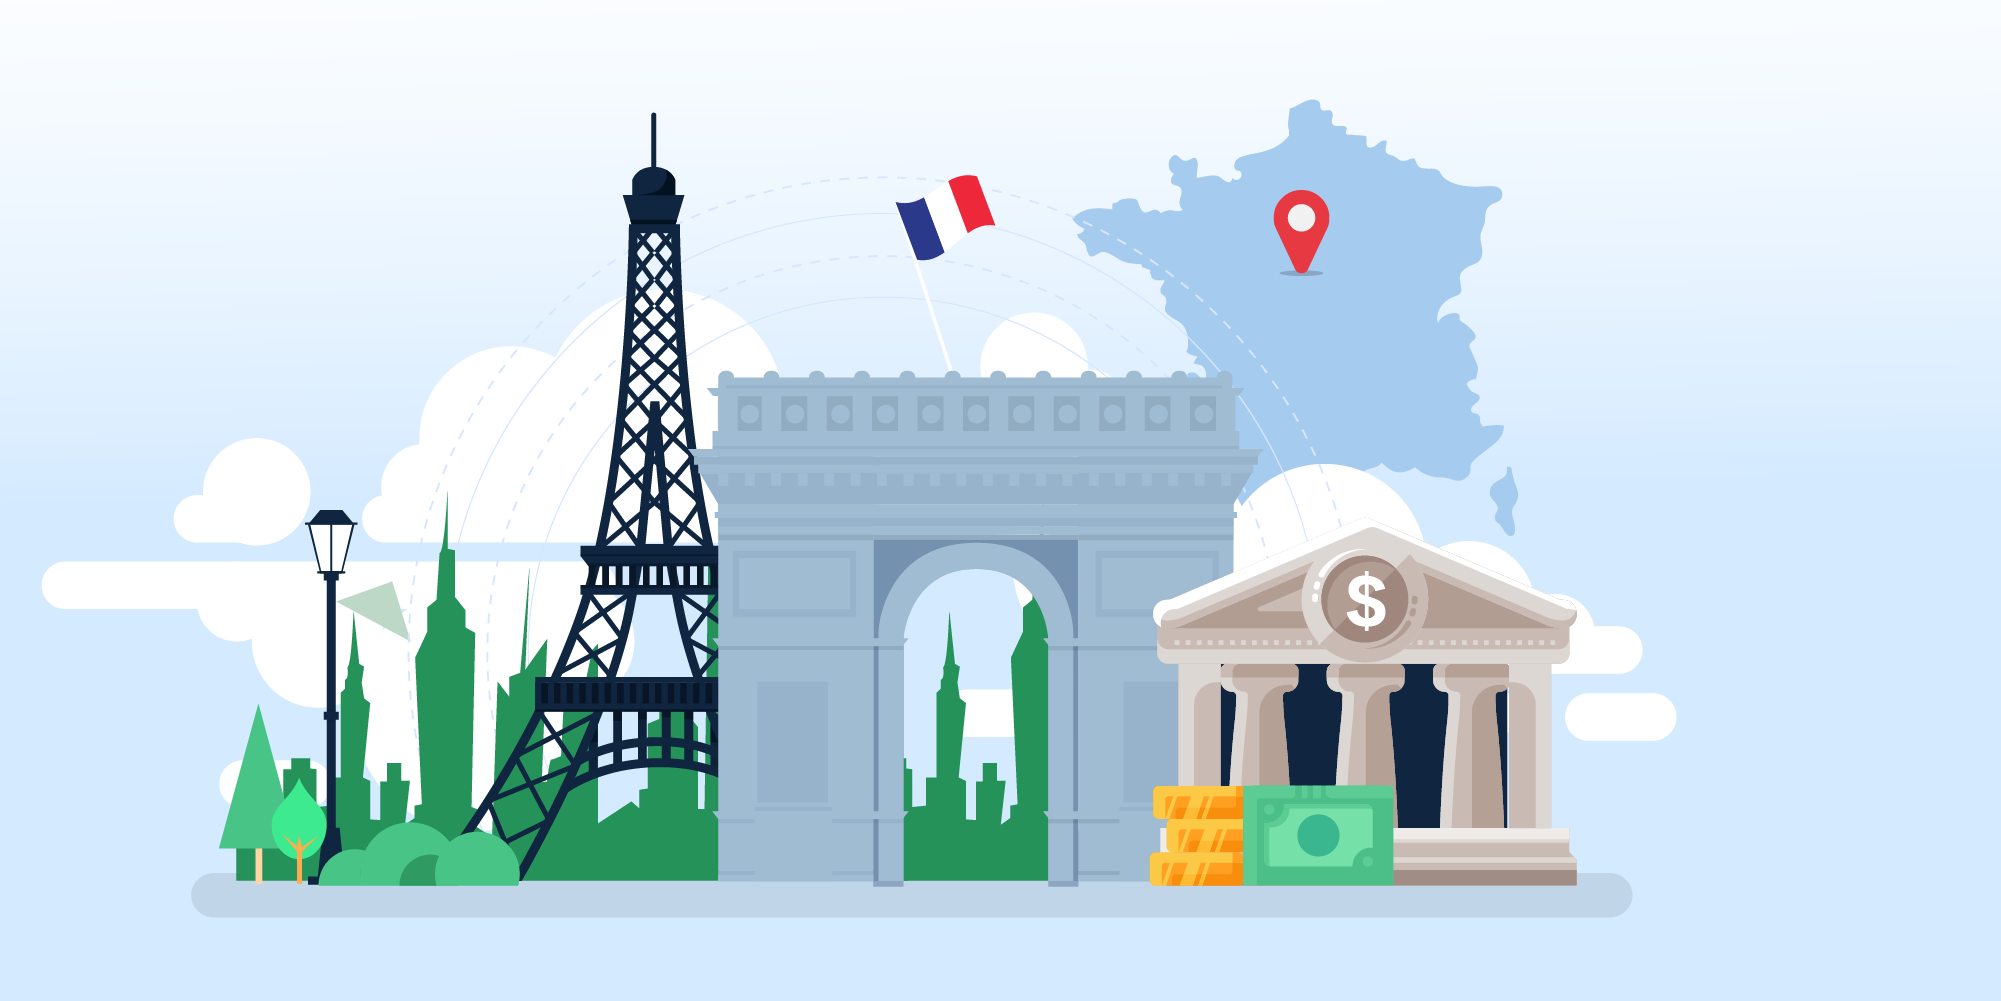 Image showing French landmarks, including the Senate Building after they passed a digital tax impacting SaaS businesses.